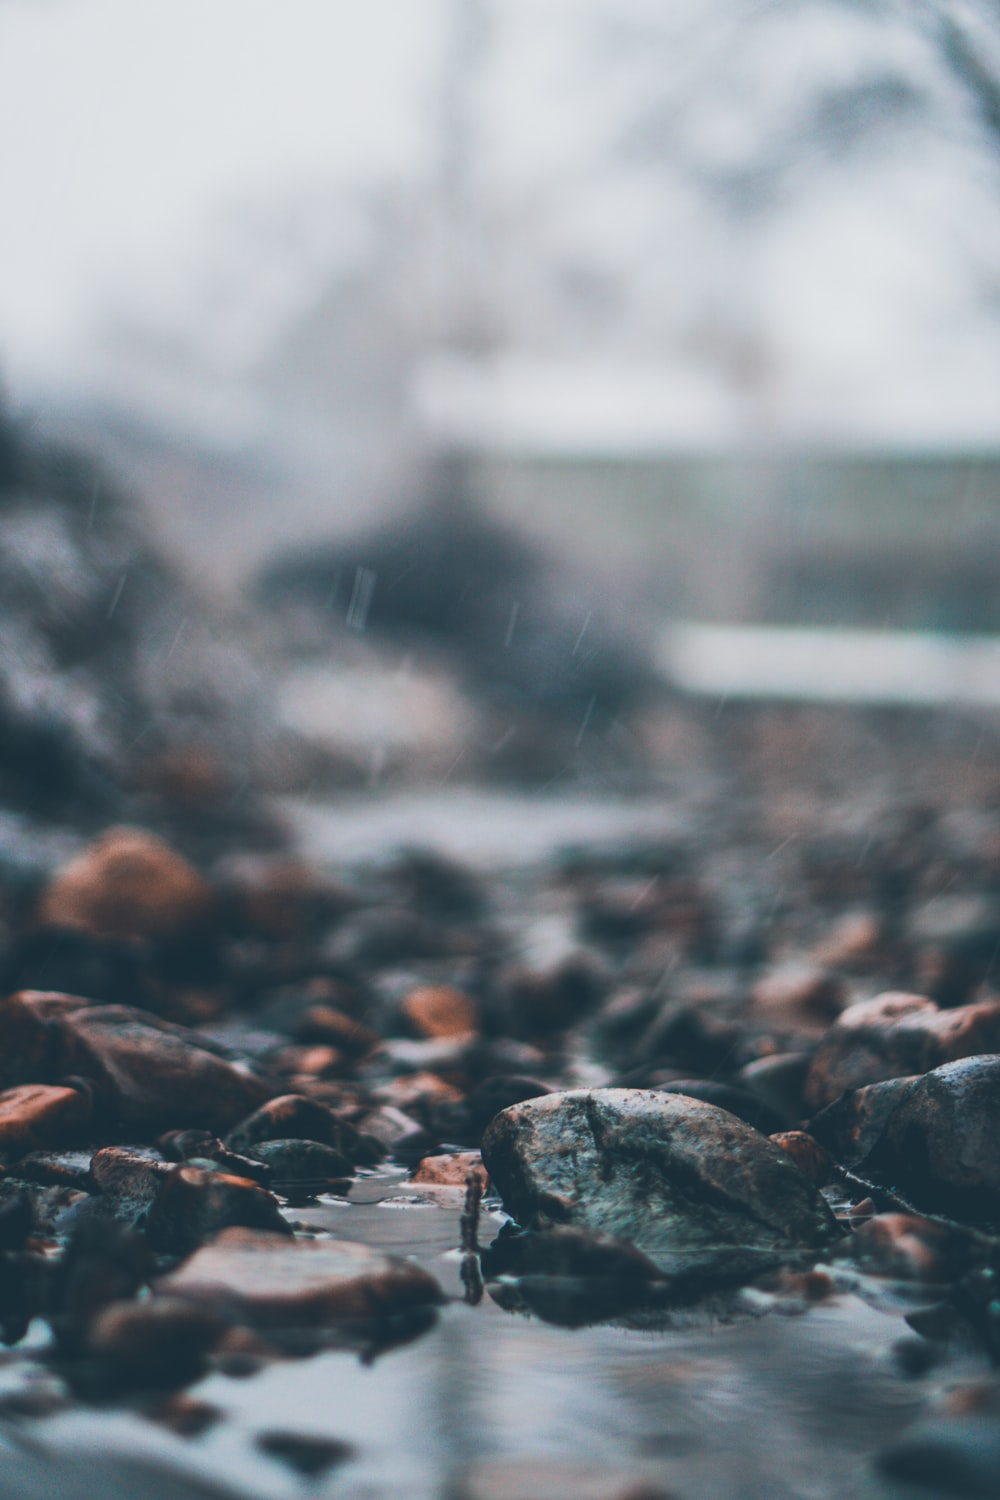 selective focus photography of soaked rocks